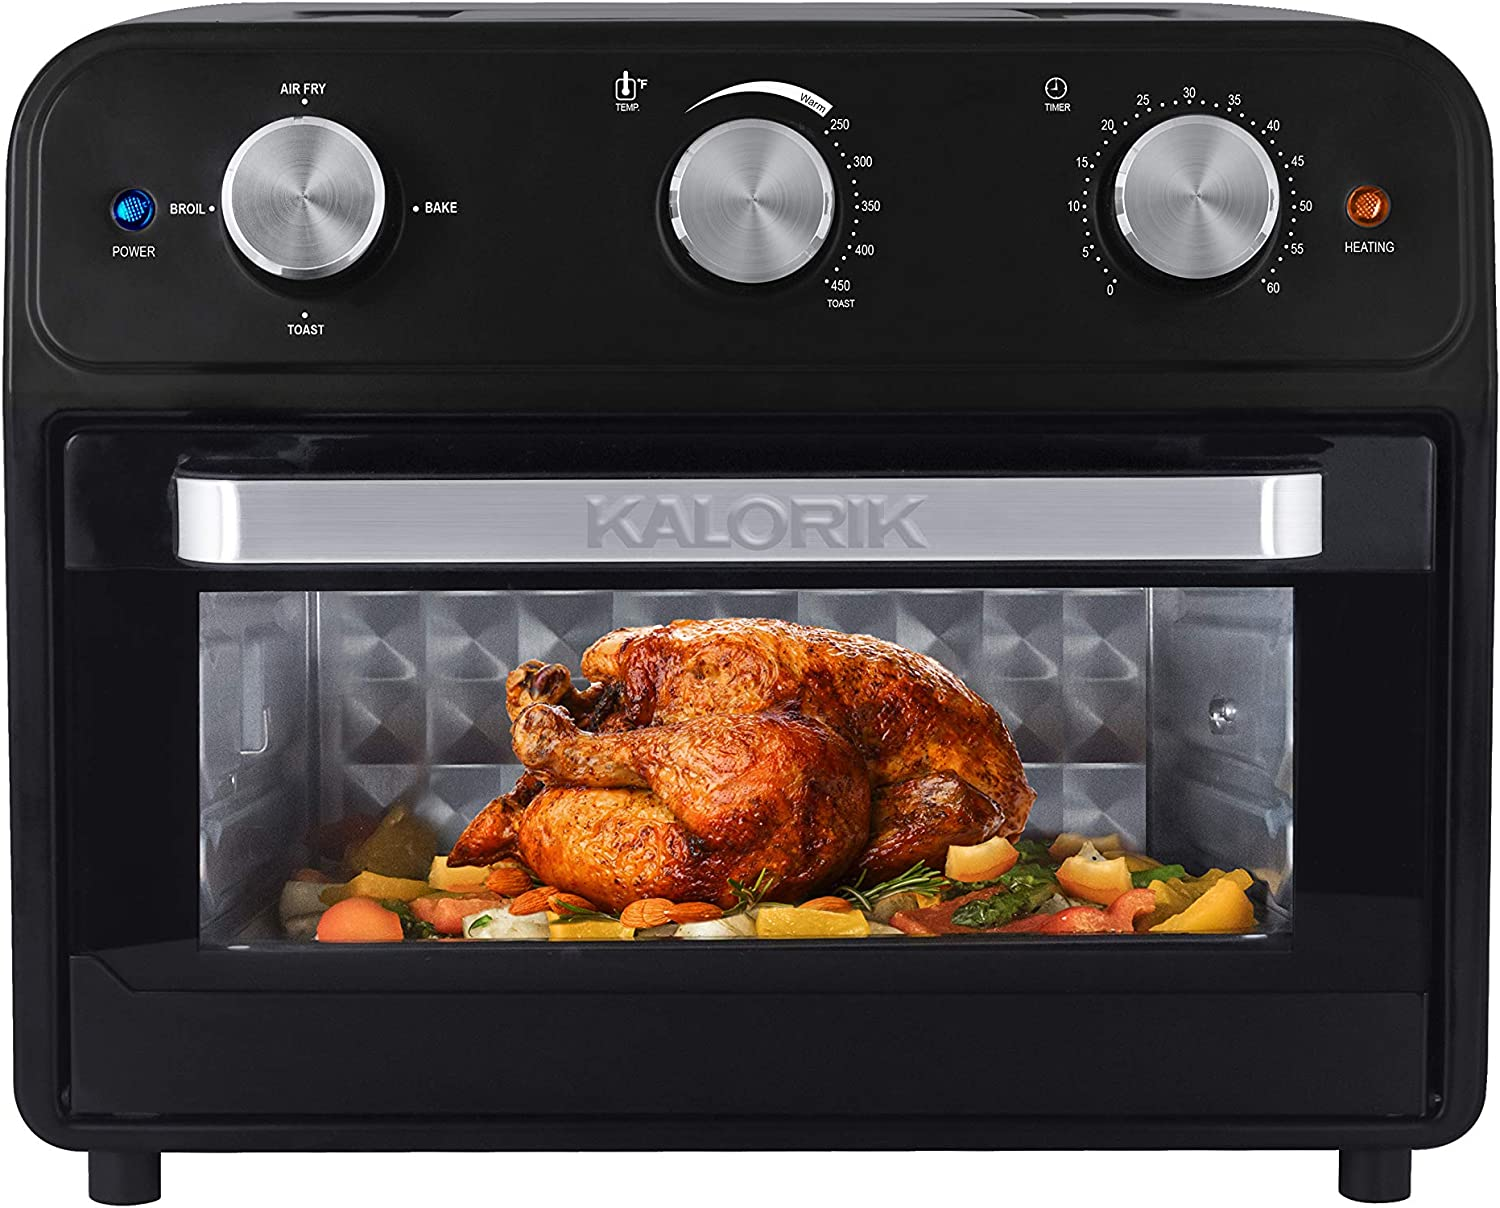 Kalorik 22 Quart Air Fryer Toaster Oven, Black